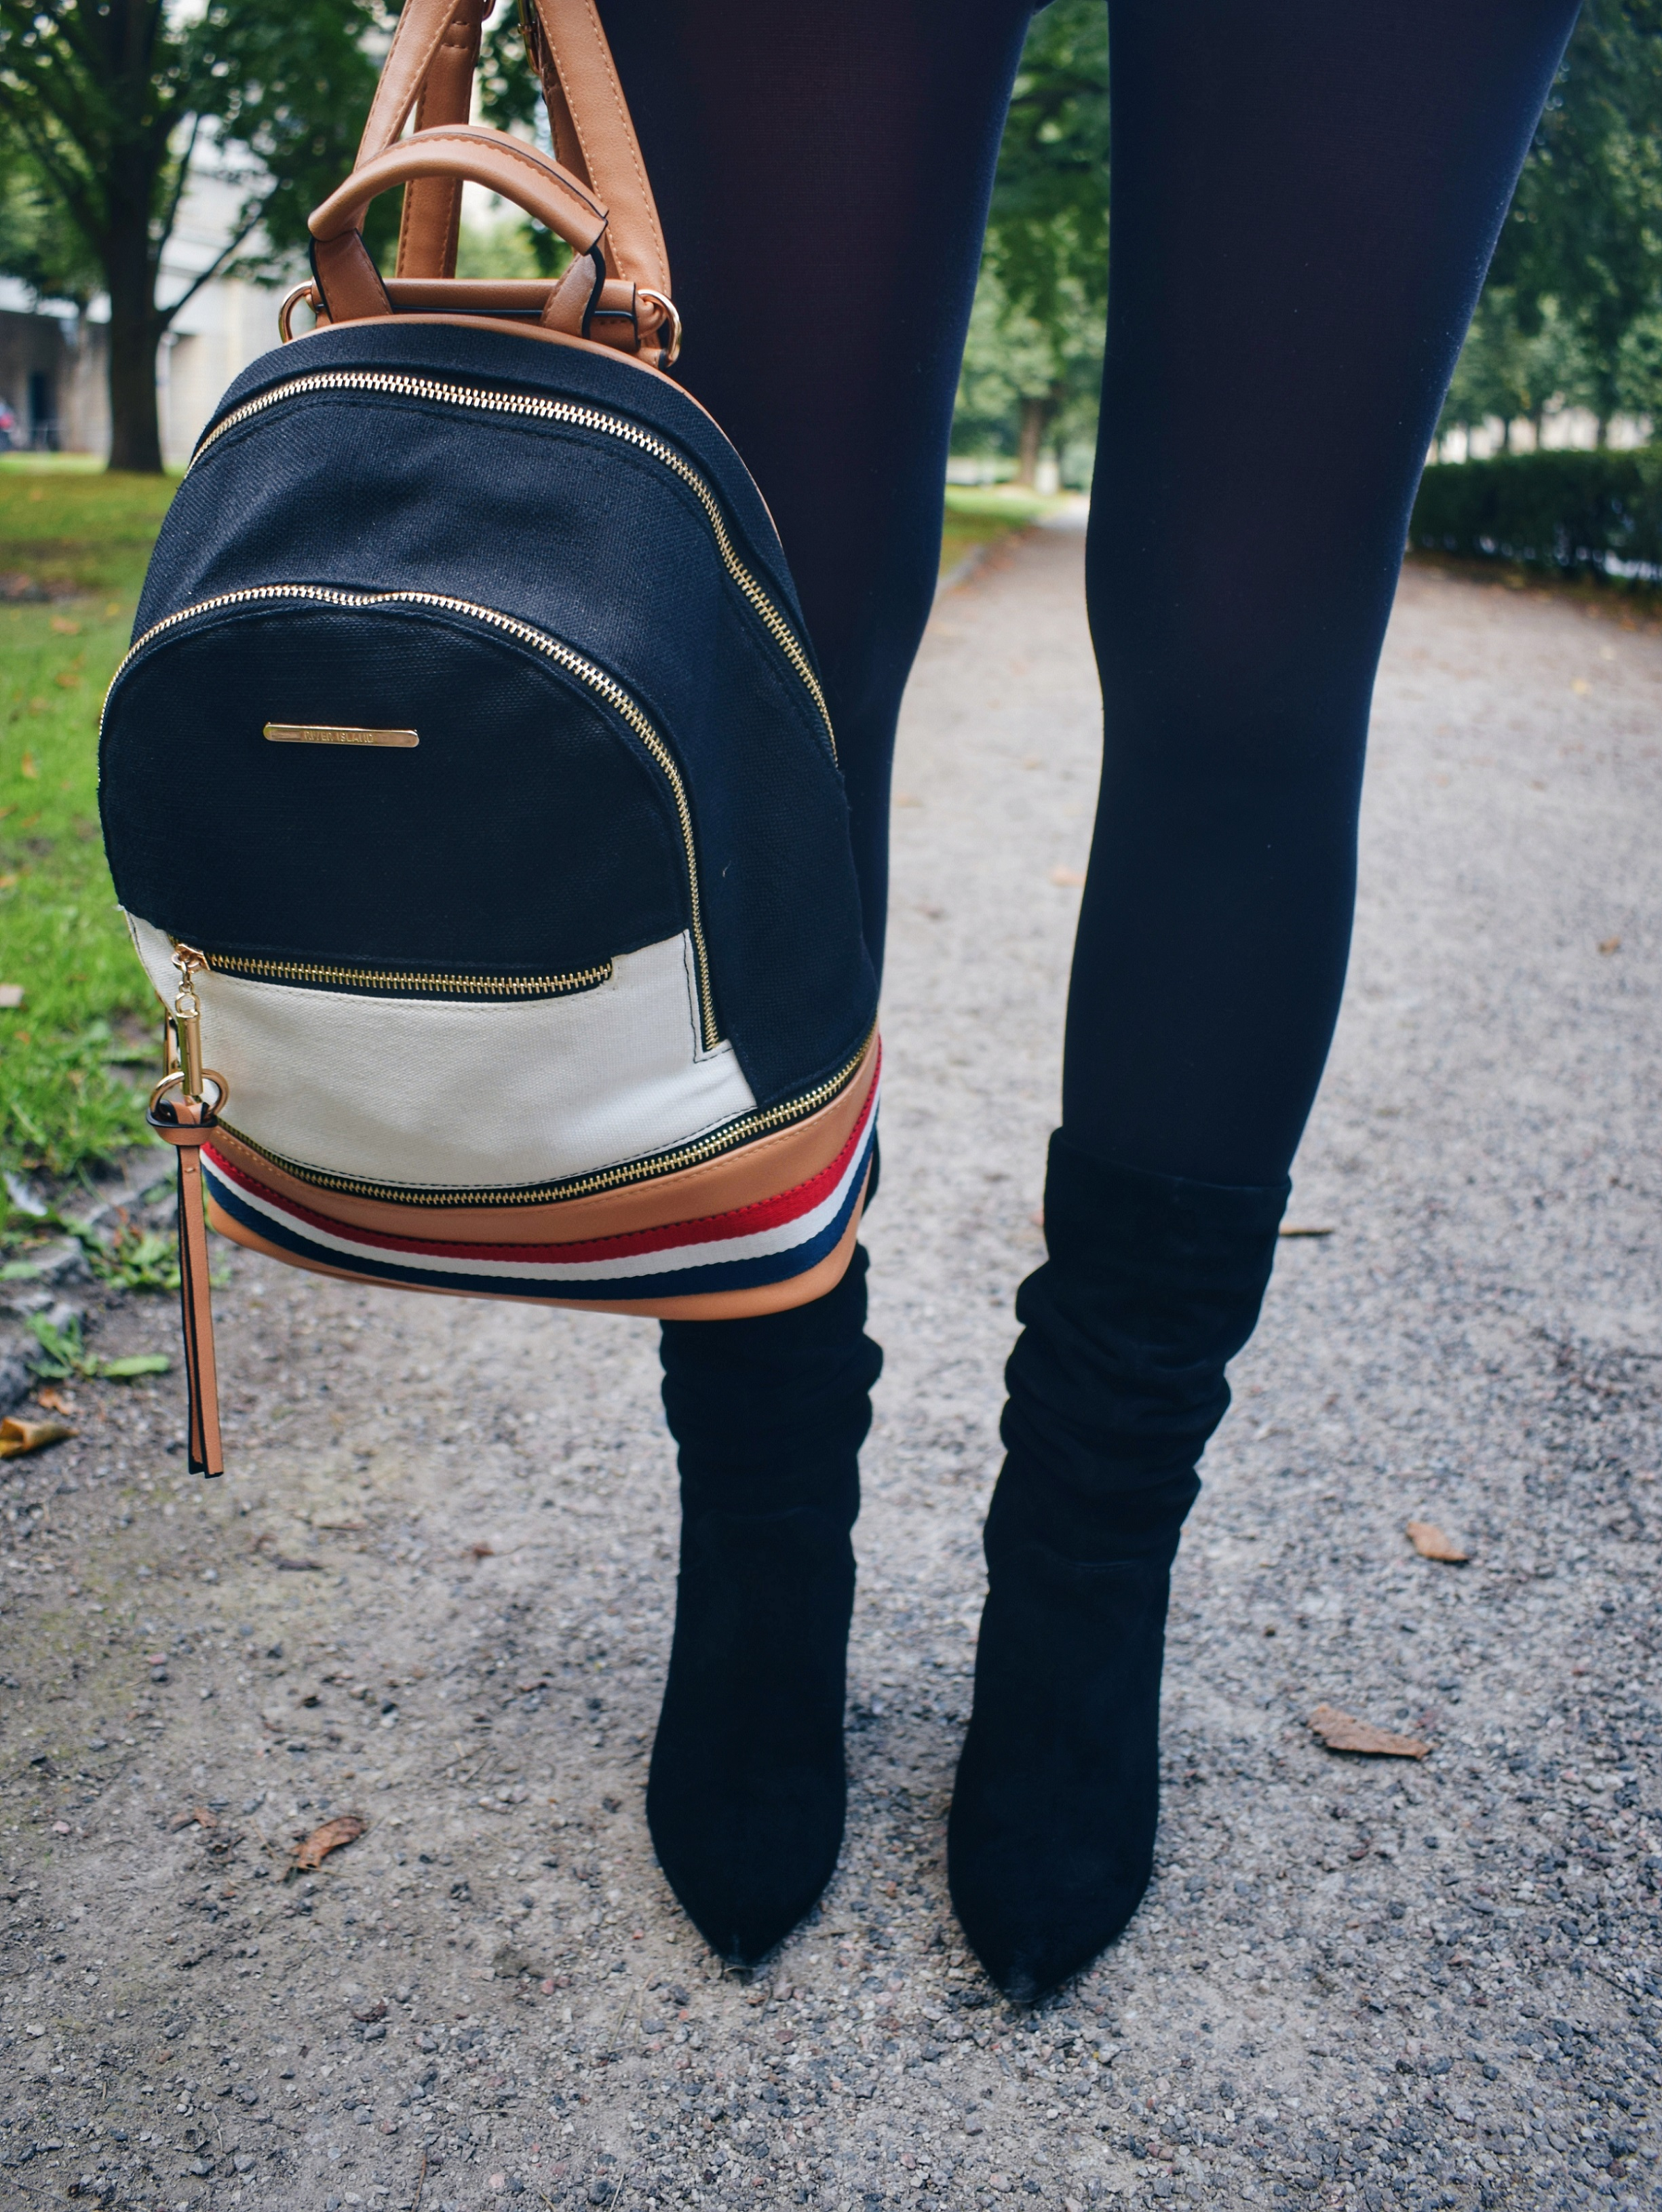 Outlandish blog Autumn favourite outfit inspiration style trend backpack